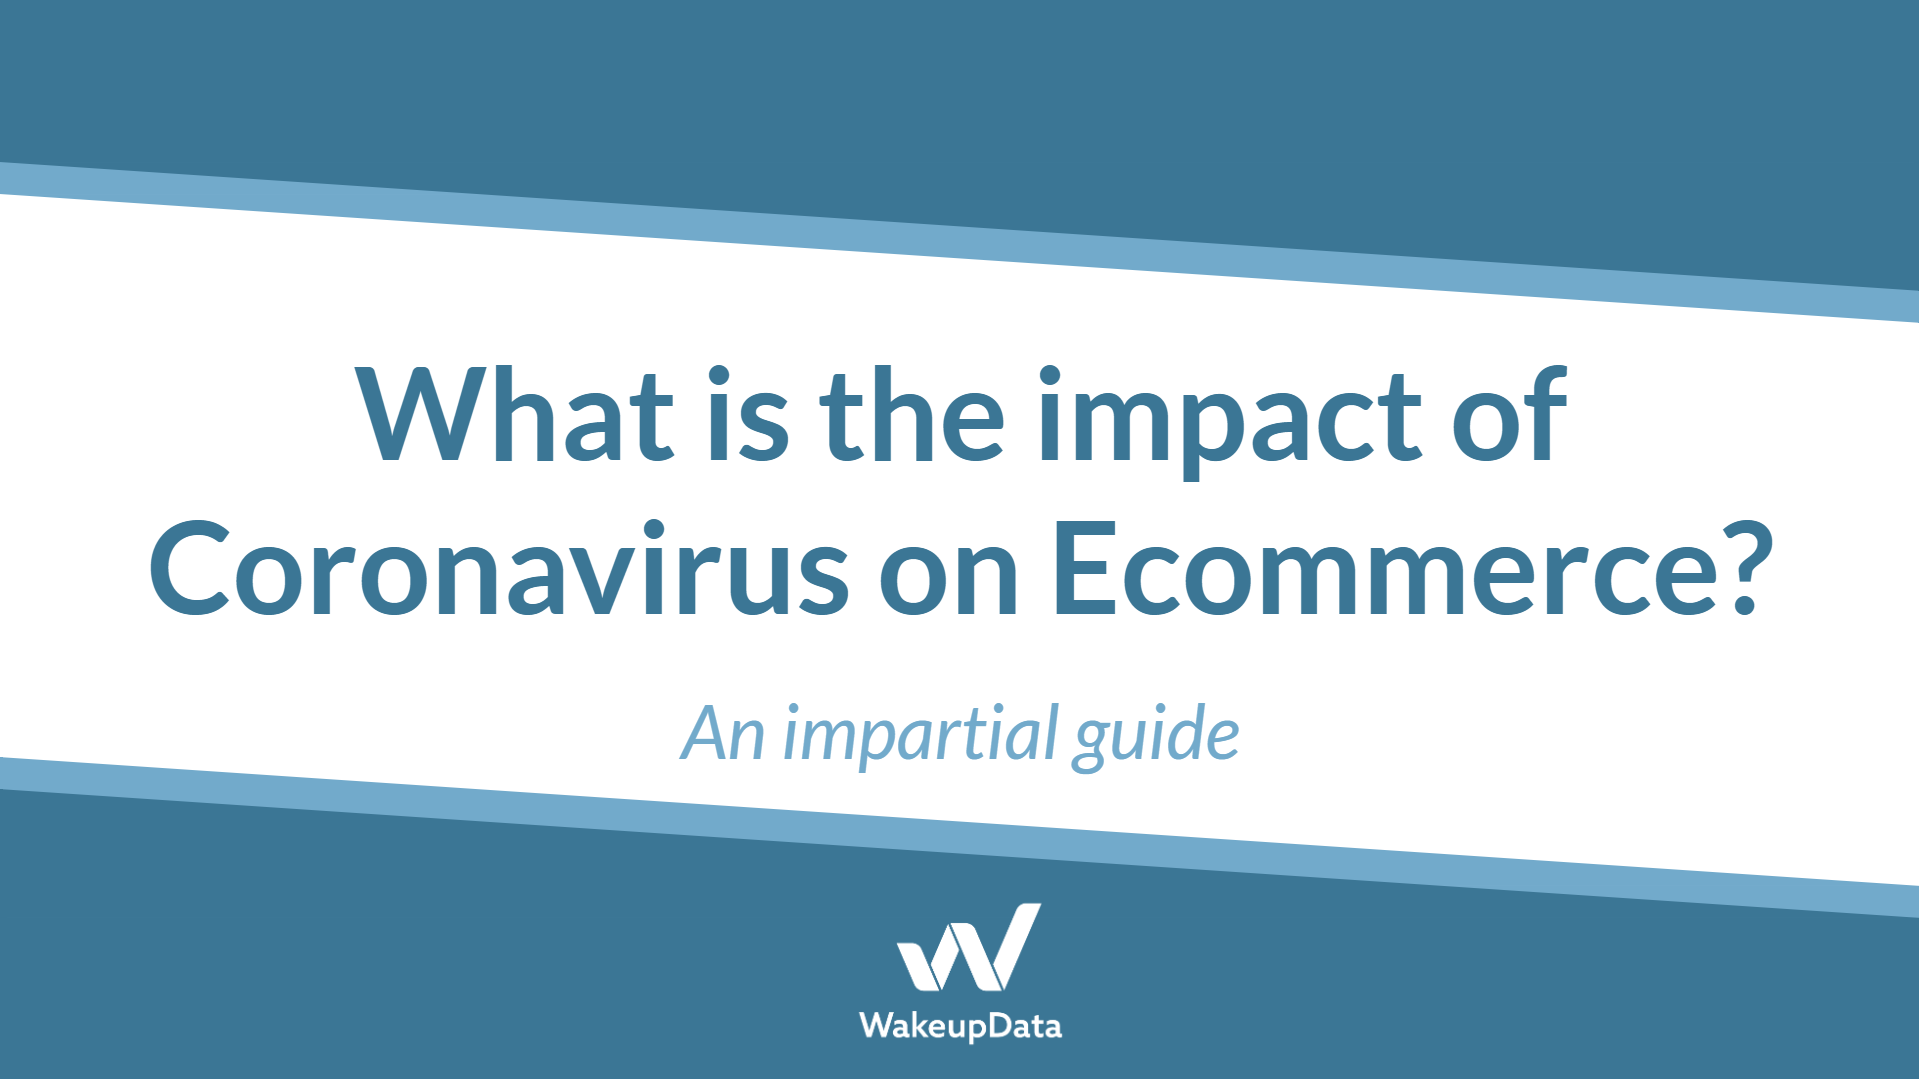 What is the impact of Coronavirus on Ecommerce? An impartial guide